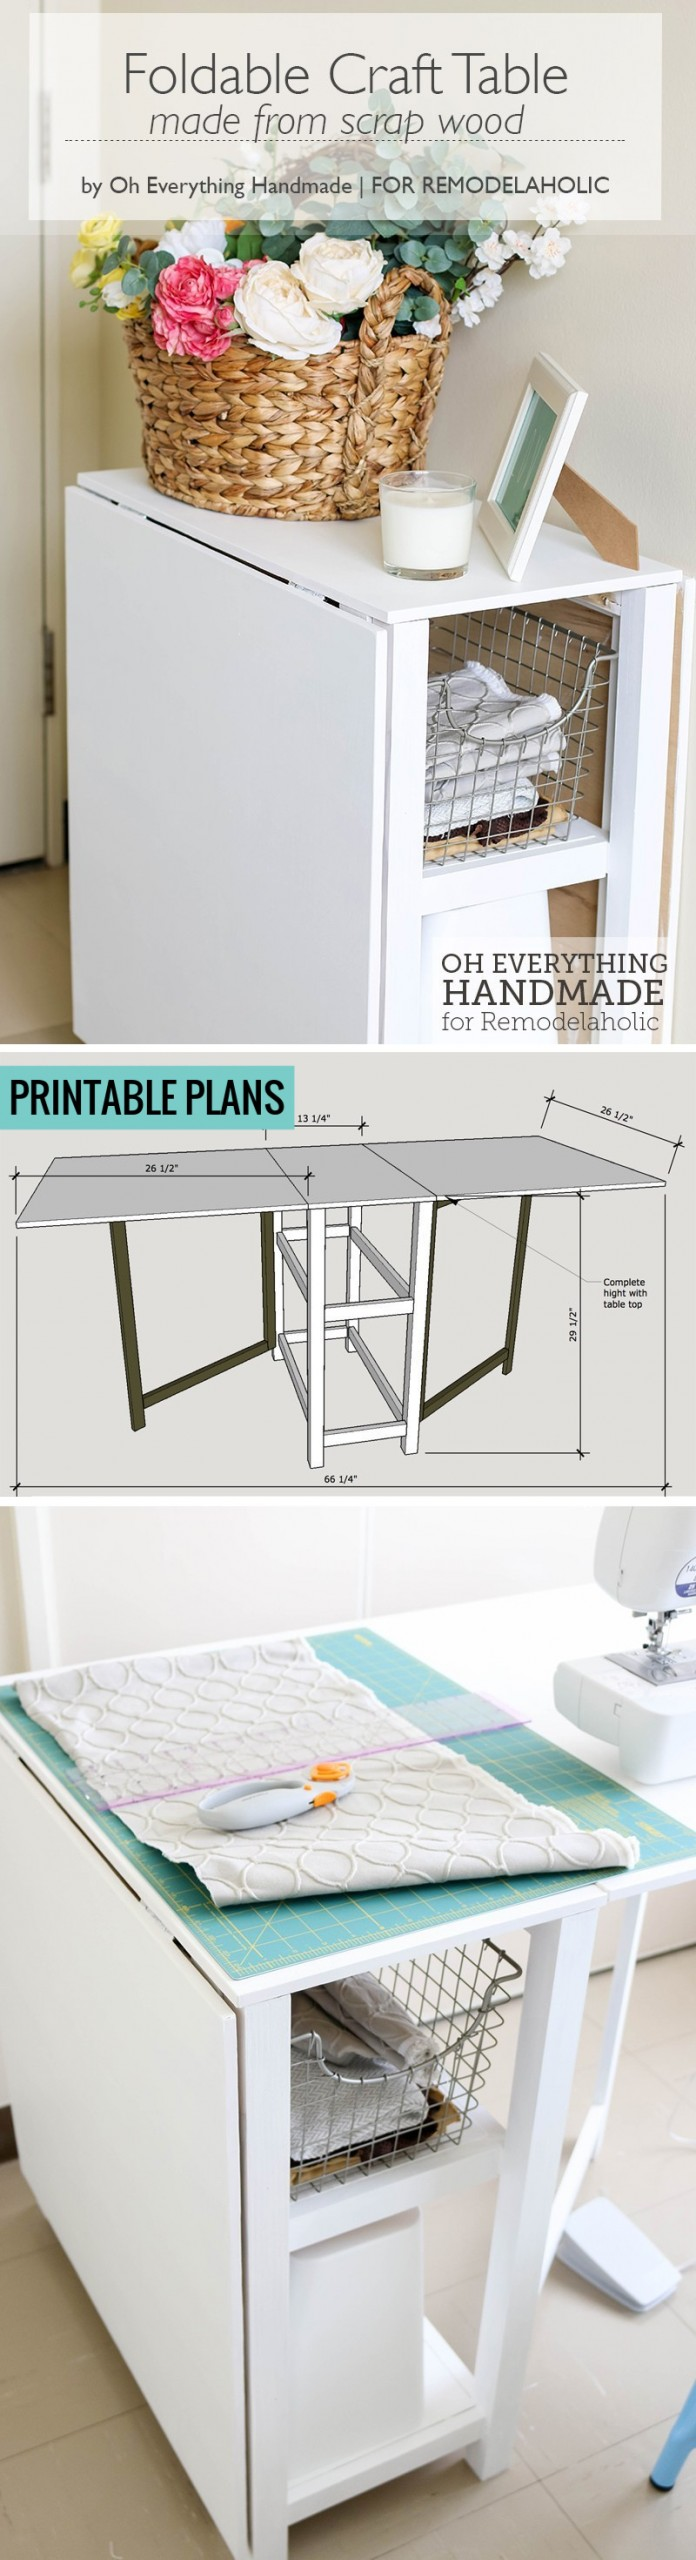 Folding Craft Table With Storage For Small Office Foldable Desk #remodelaholic